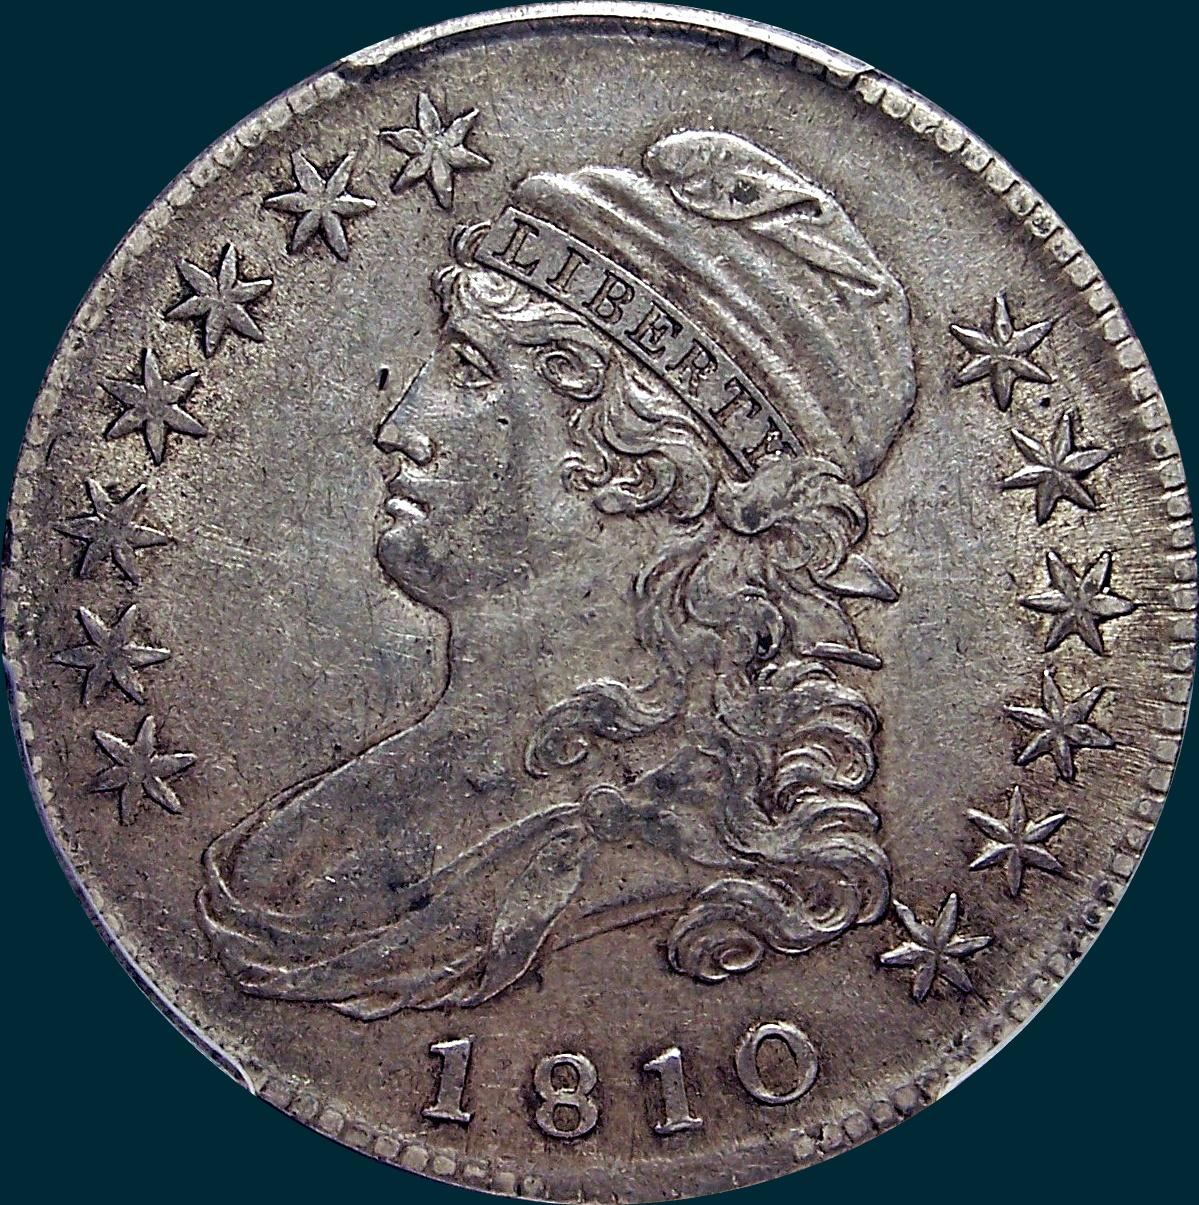 1810, O-105, Capped Bust, Half Dollar, Guido